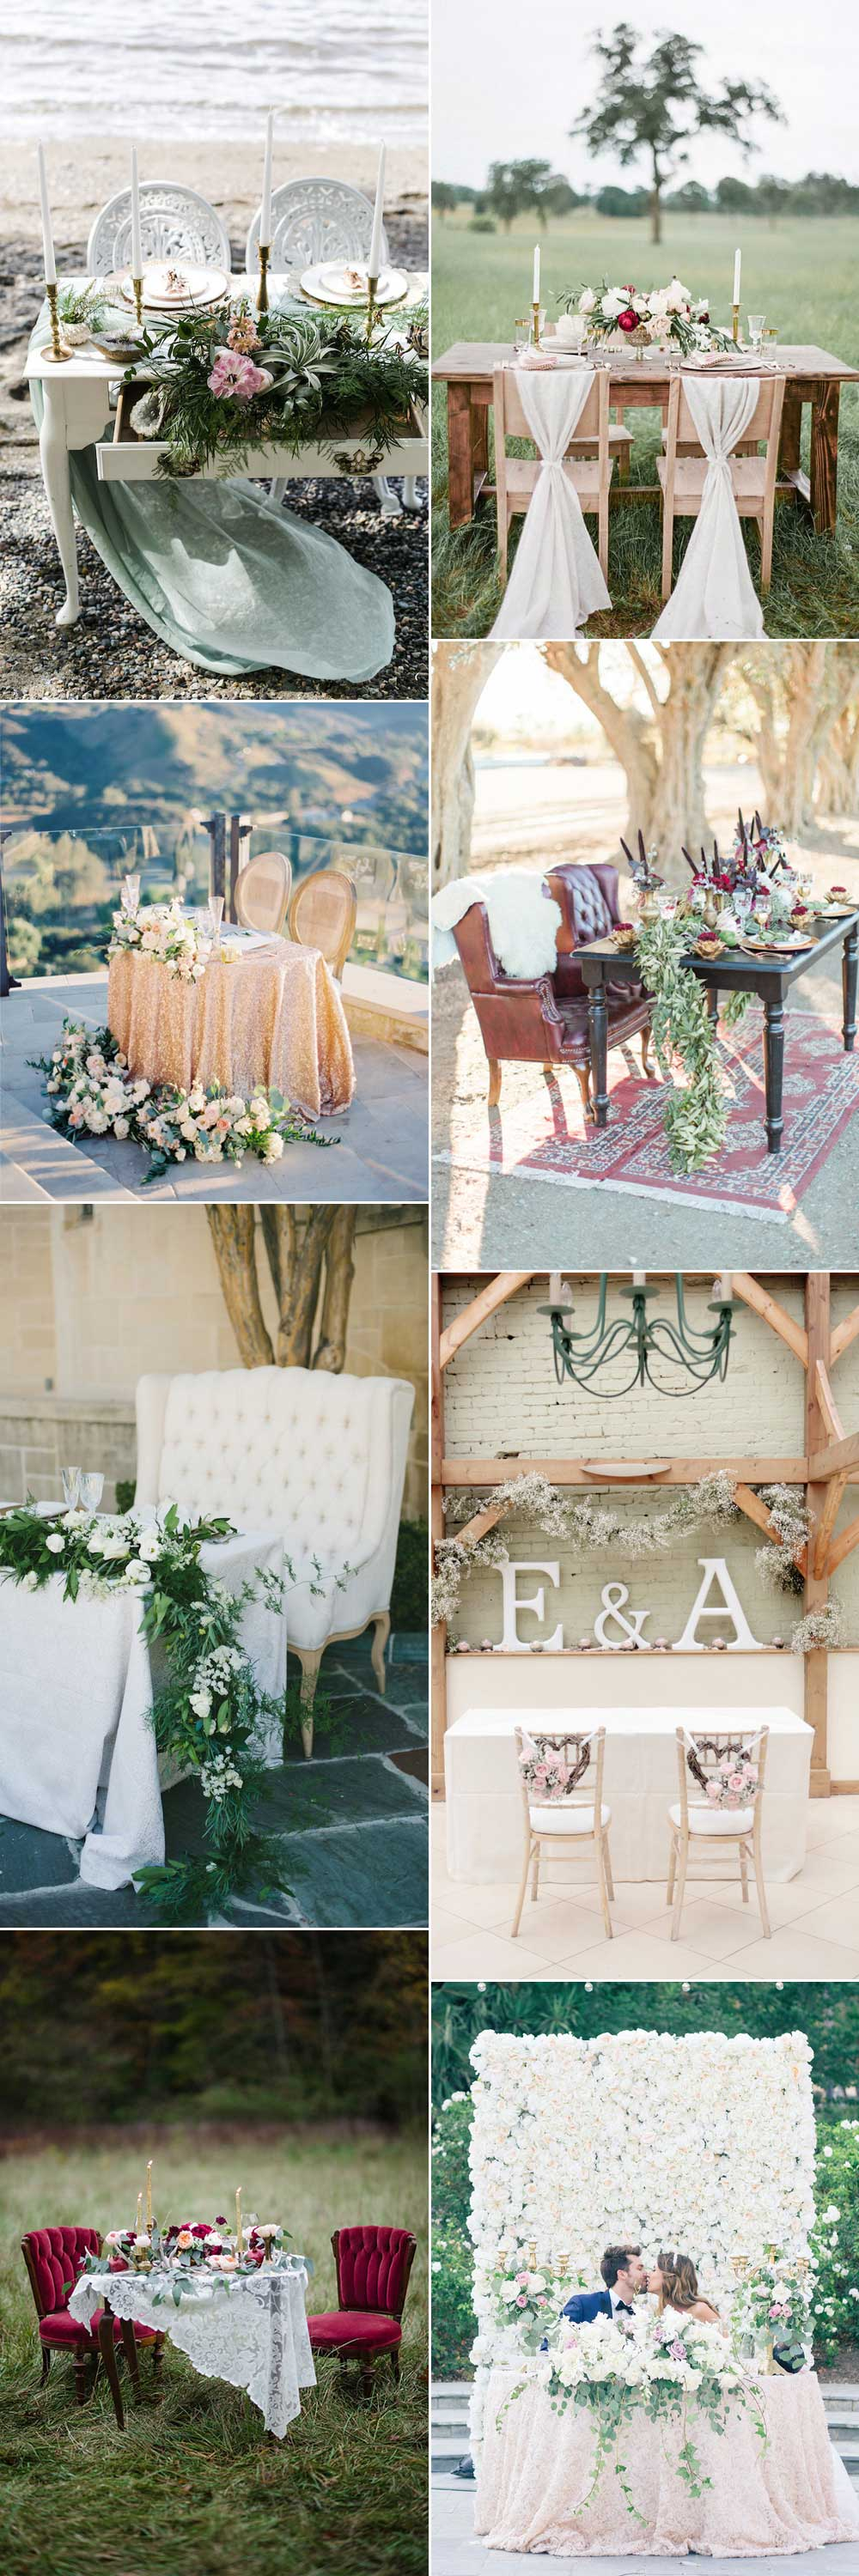 Ideas for wedding tables for two